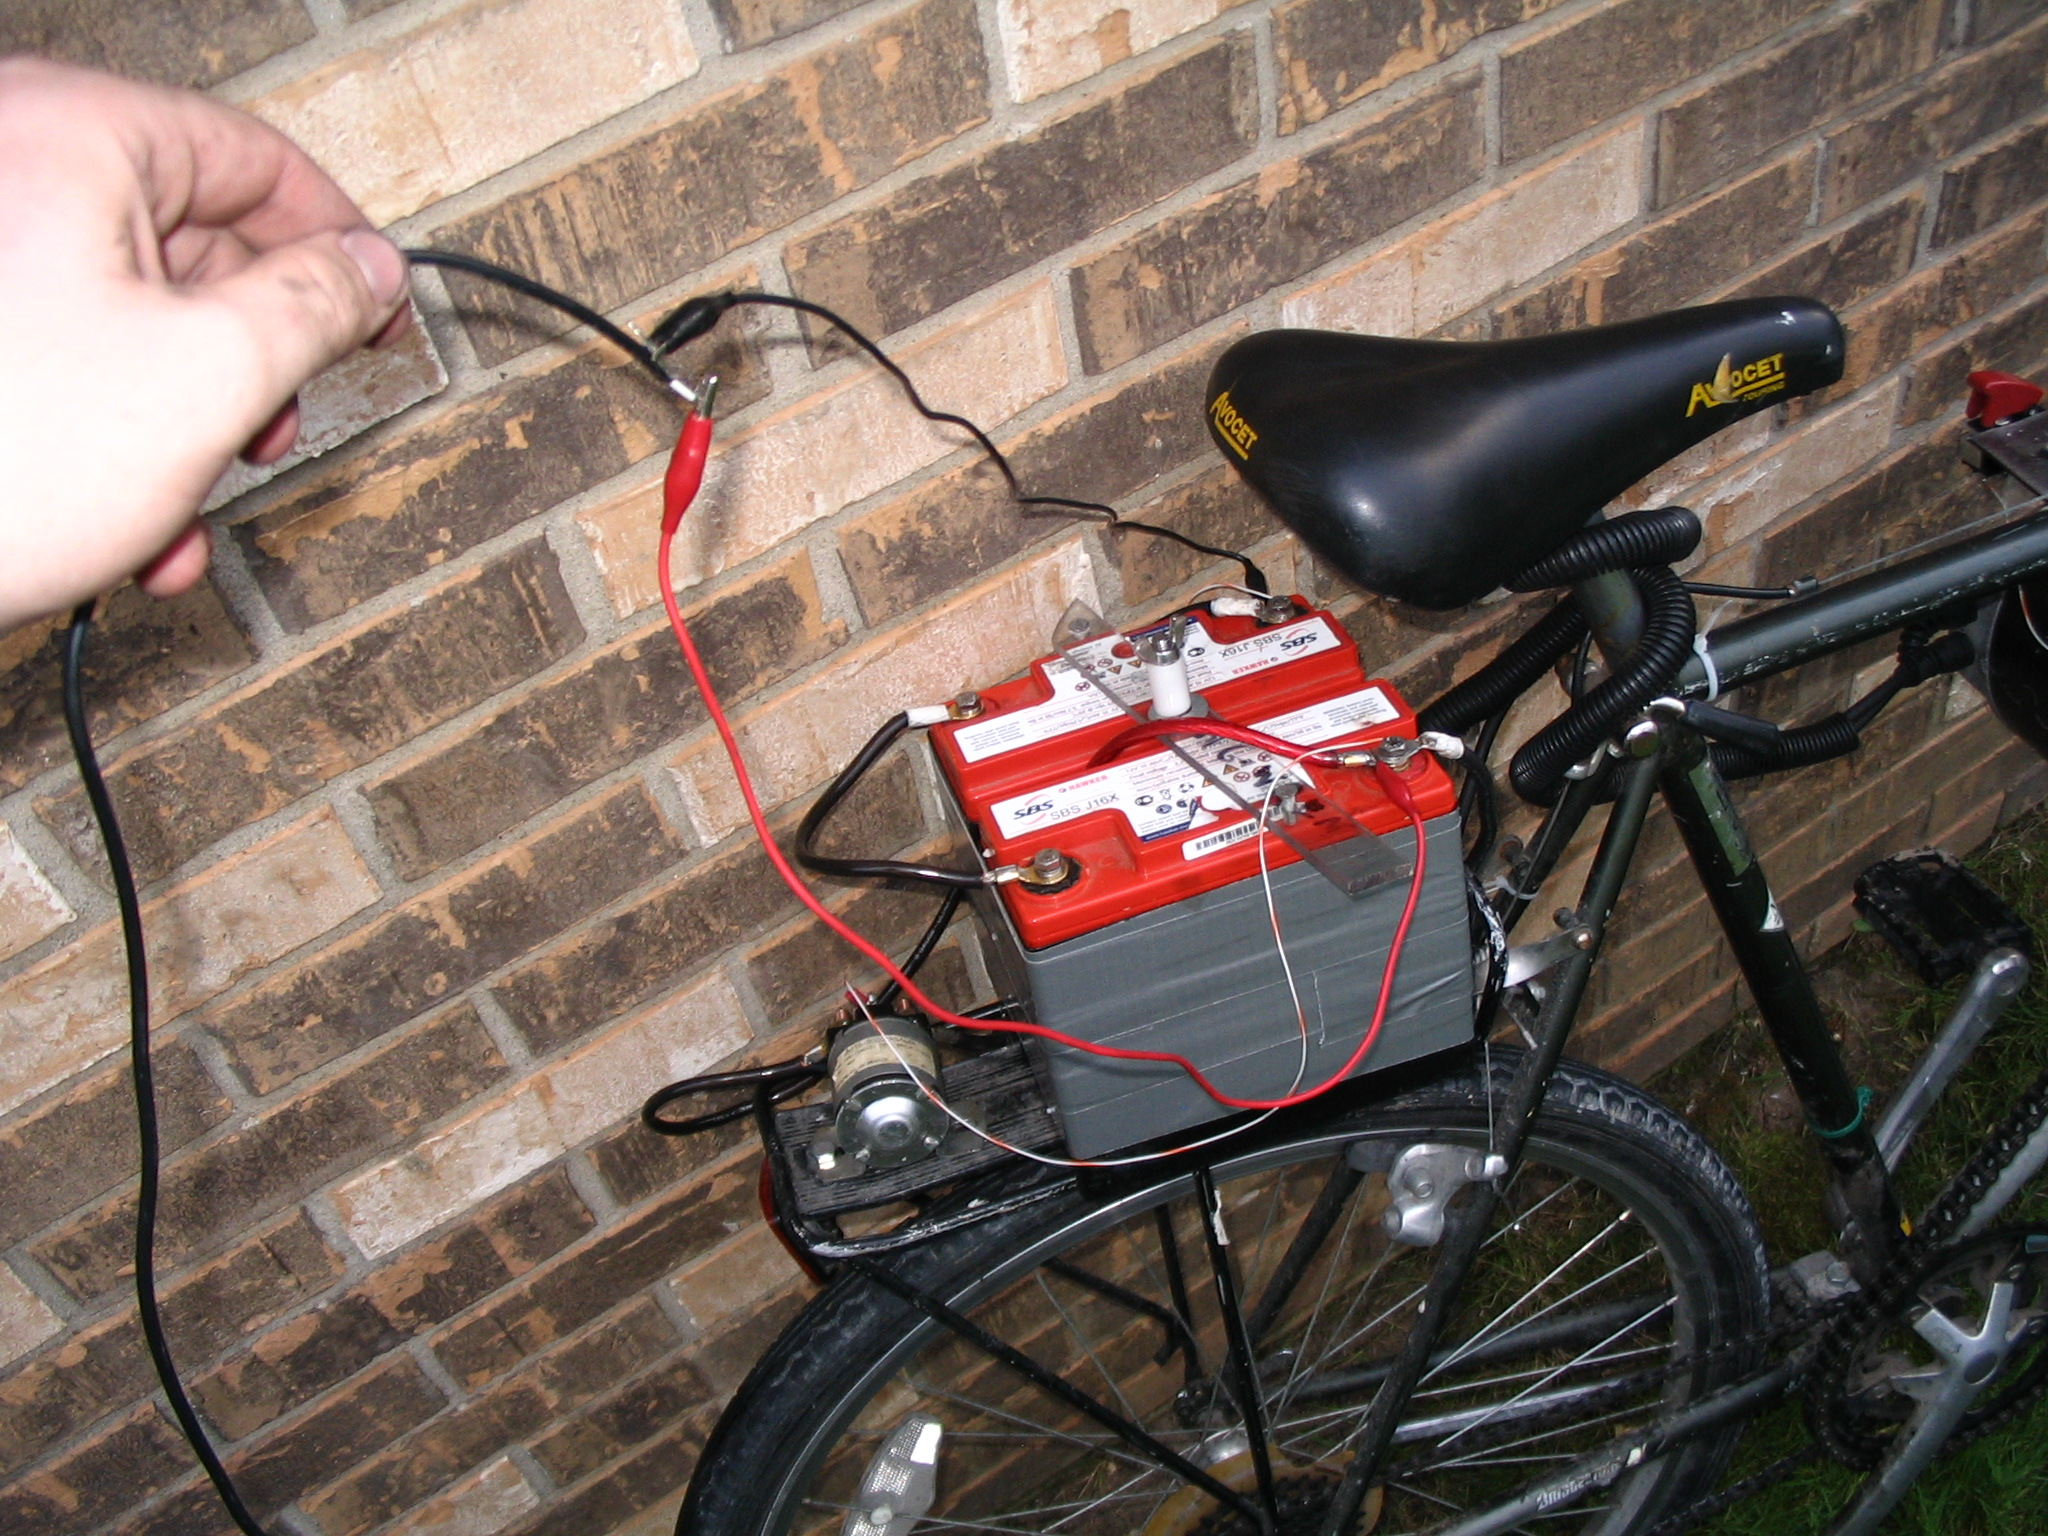 Picture of Electric Bike - Now With Chain-snapping Power!